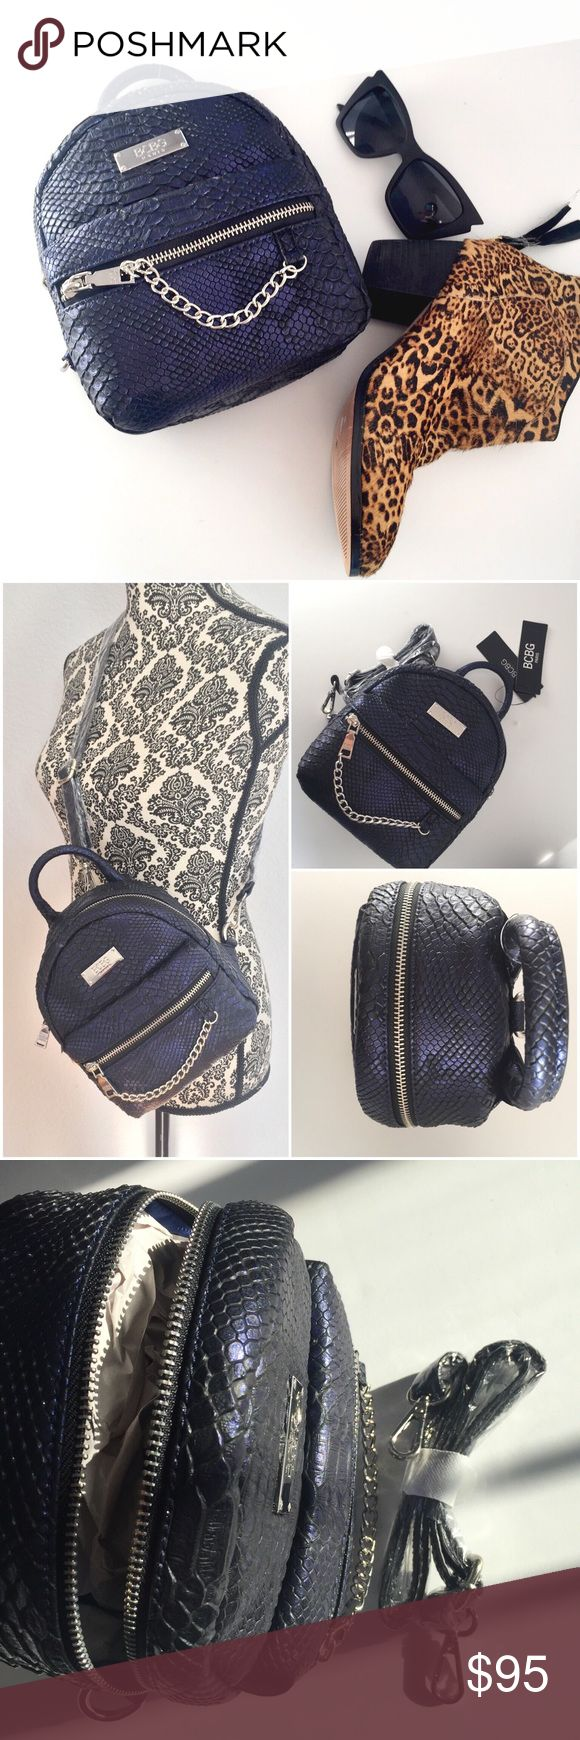 """BCBG Paris main st petite backpack NWT COLOR Blue. BCBG Paris Main St Petite backpack. Comes with adjustable and removable strap. Approx 9""""W 8""""H 4""""D 12""""L silver hardware. Color is amazing, it changes from blue to black and has a bit of shimmer. Faux snack skin. BCBG Bags"""